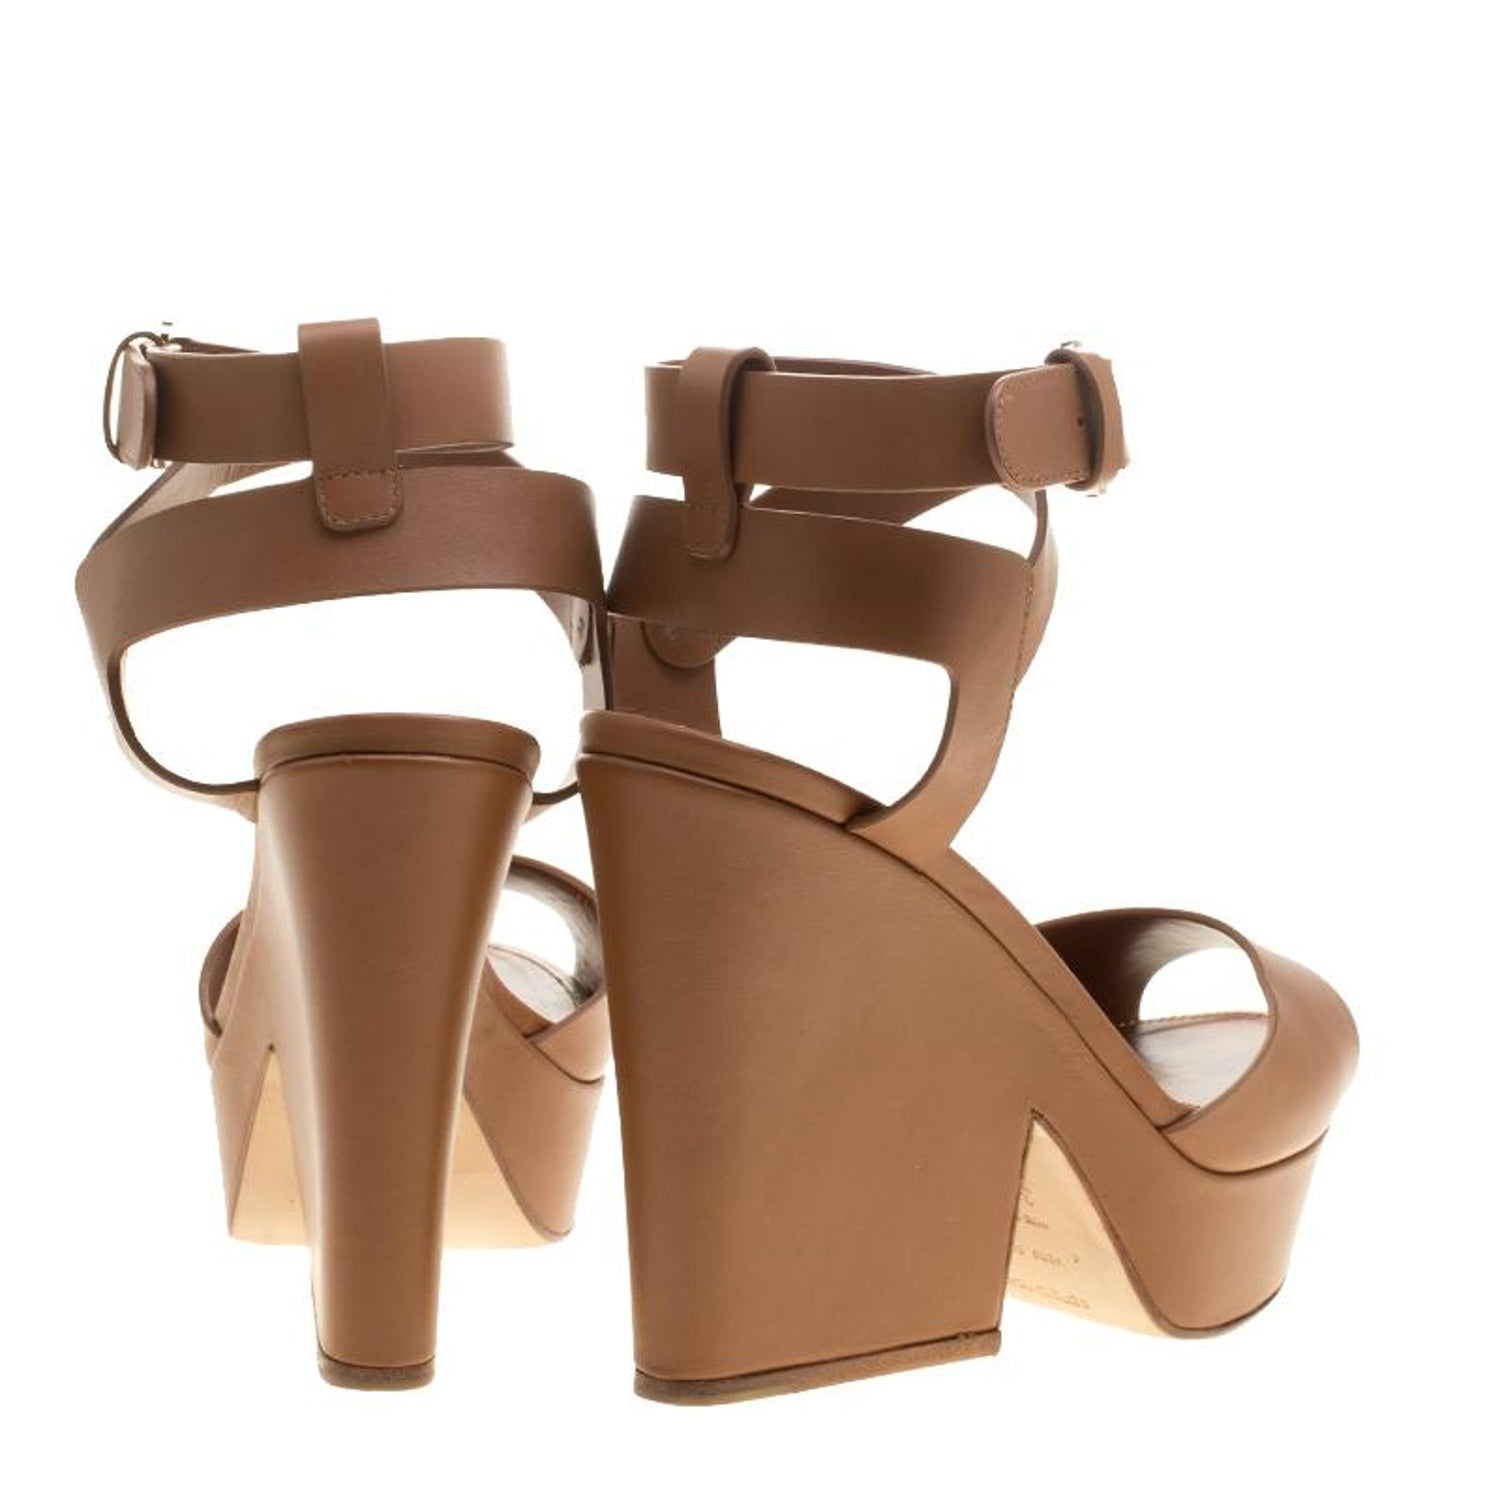 b162a65d78cc Sergio Rossi Brown Leather Ankle Wrap Block Heel Platform Sandals Size 38.5  For Sale at 1stdibs